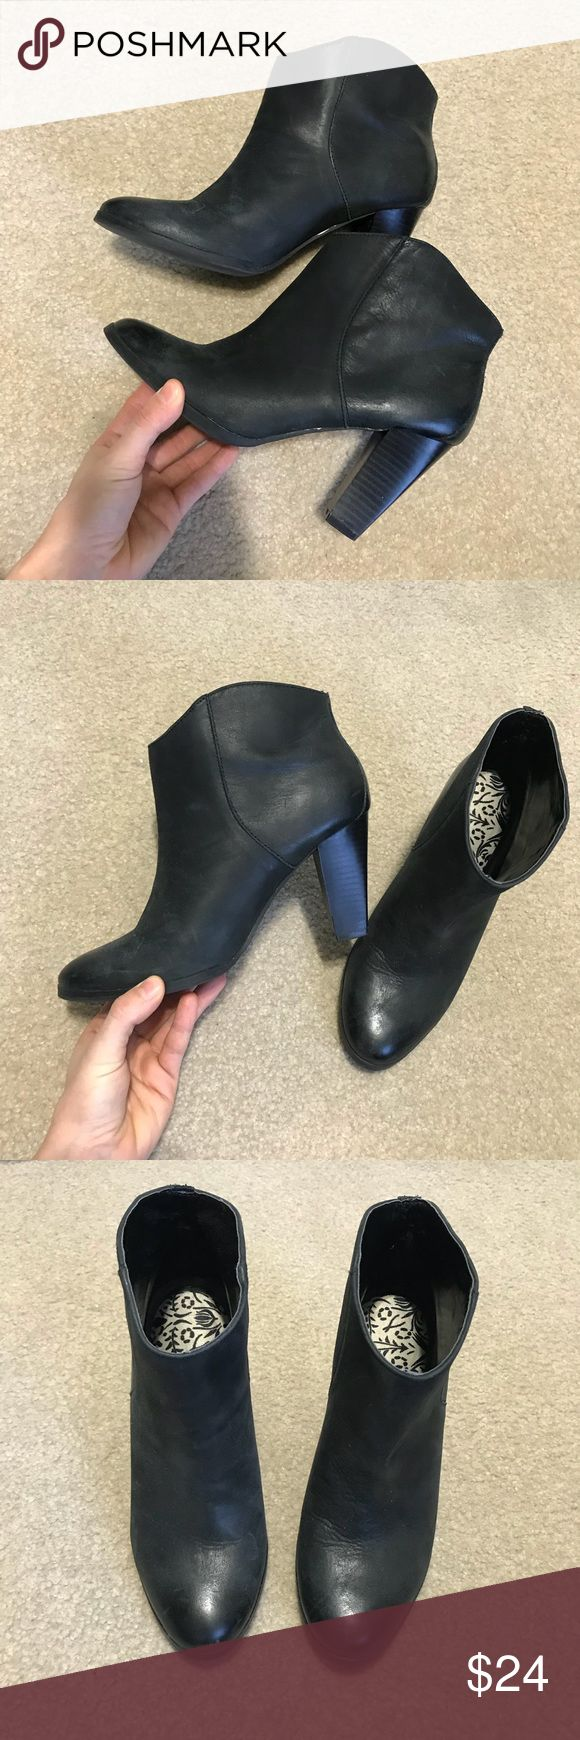 """Black Gap Leather Ankle Boots Size 7 Women's Genuine leather faded black color ankle boots. From Gap. Heel is 3.2"""". Very comfy! Minor wear. Insert footbed pads included. Size 7. GAP Shoes Ankle Boots & Booties"""